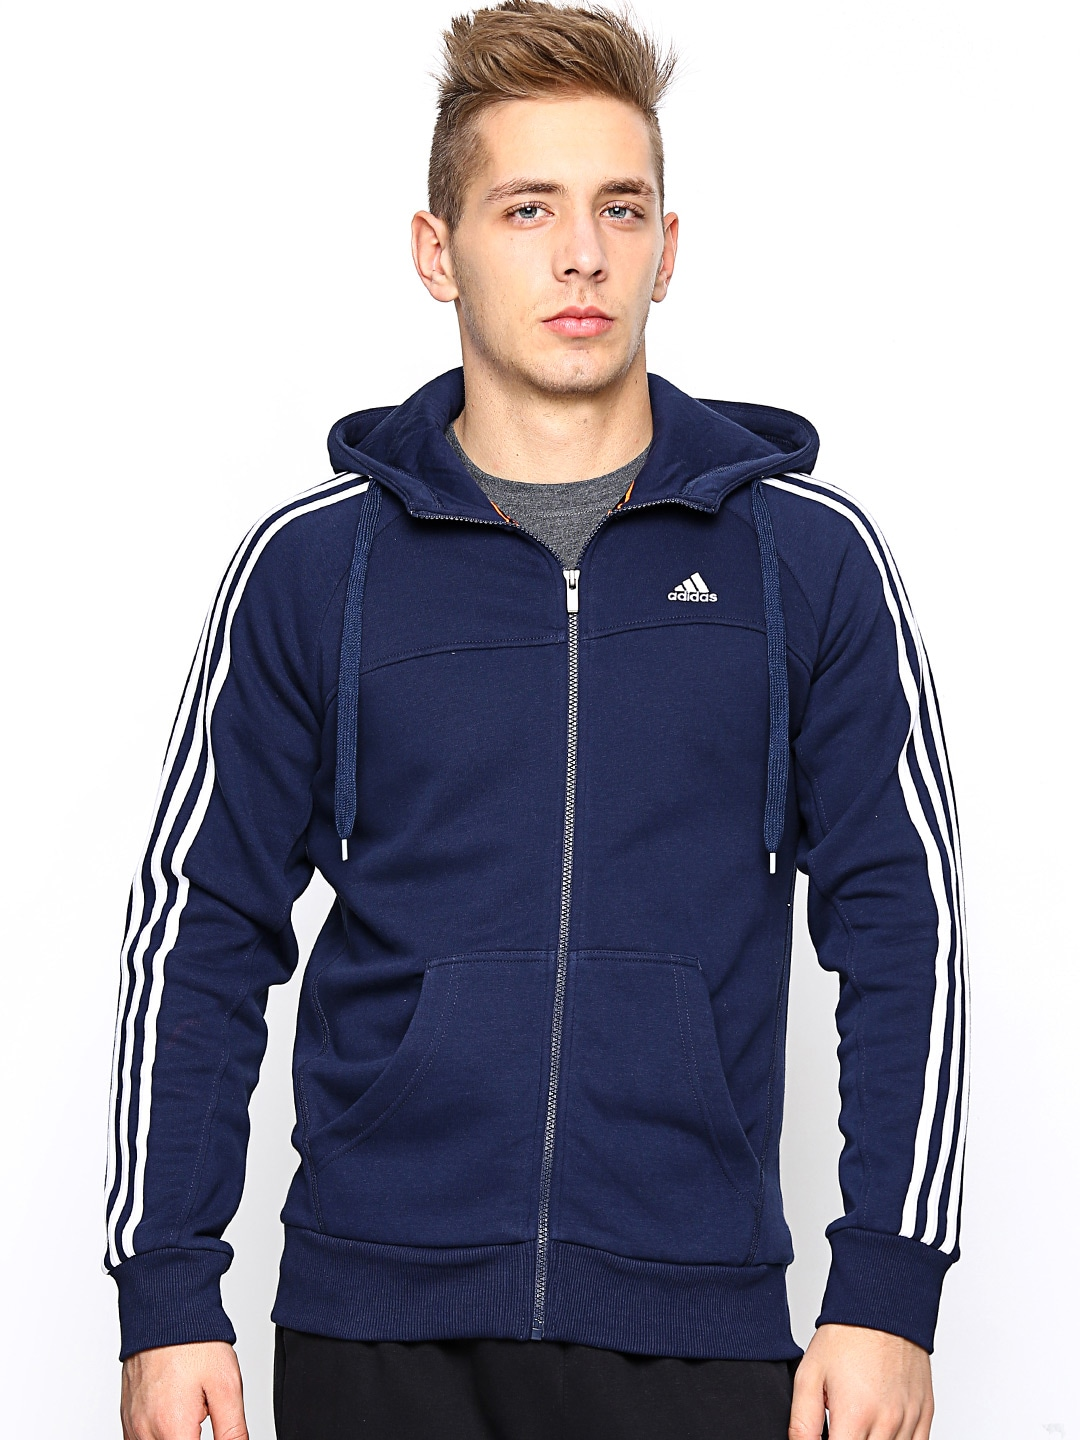 shop hot product really comfortable Adidas x20775 Men Navy Ess 3s Fz Hooded Training Sweatshirt